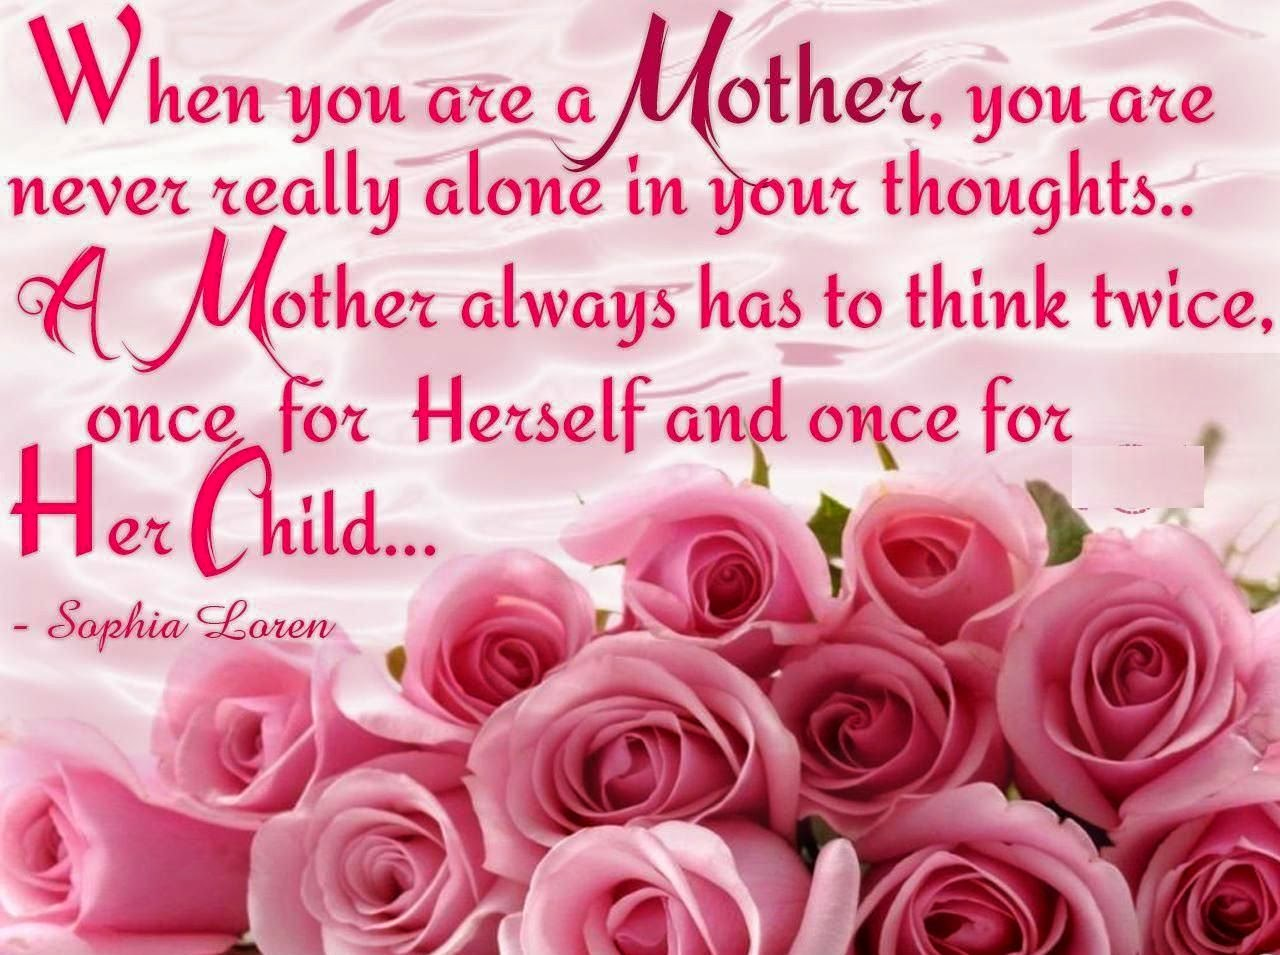 Top 100 mothers day 2018 wishes message quotes images for mothers day images wallpapers greetings cards kristyandbryce Choice Image